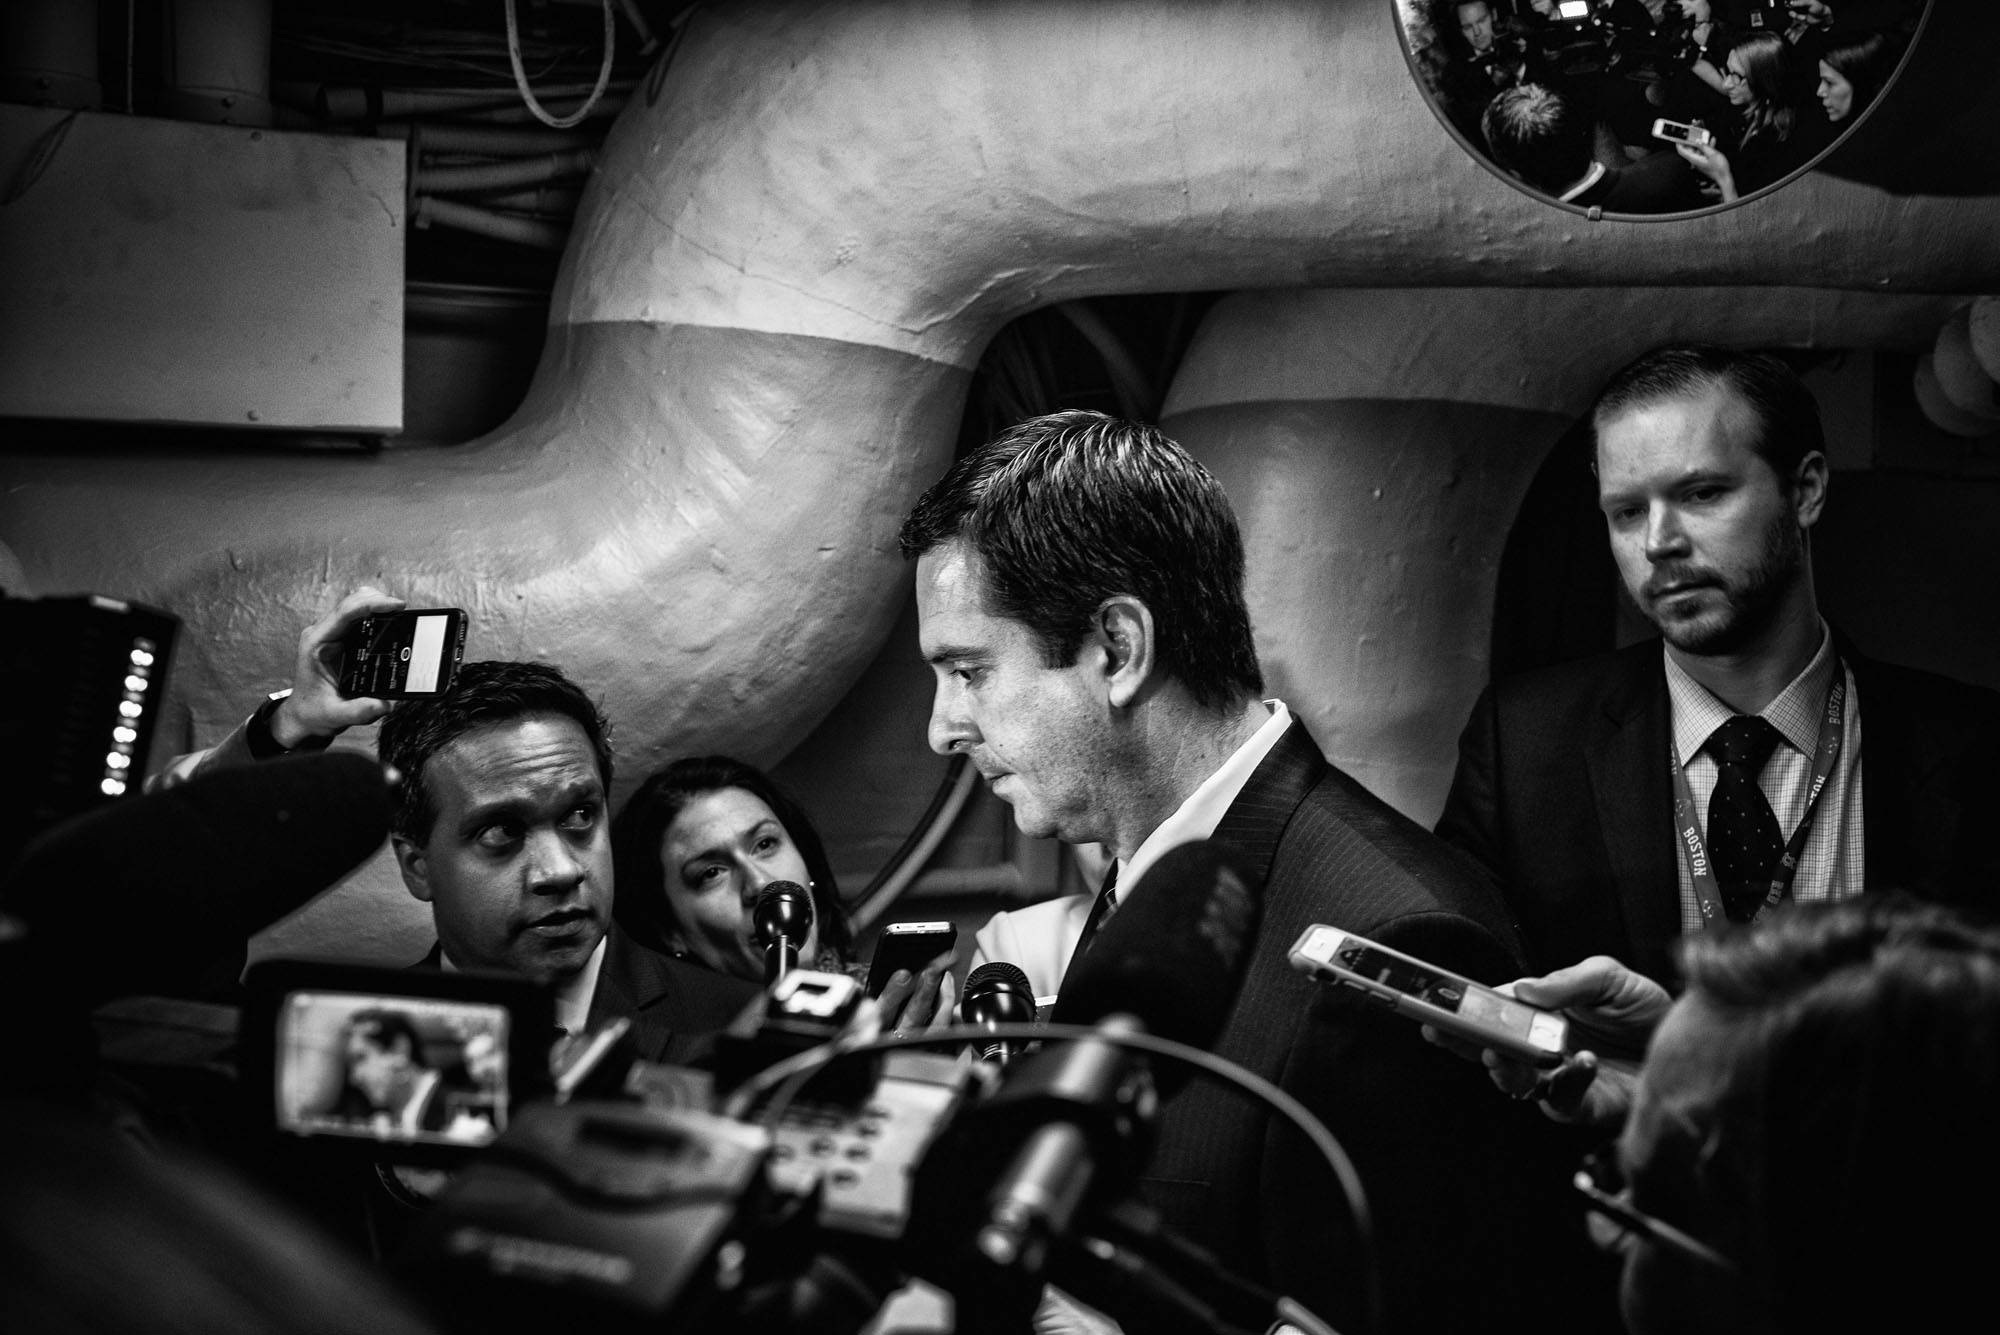 House Intelligence Committee Chairman Devin Nunes (R-CA) speaks with the media after attending a closed House Republican conference, on March 28, 2017.